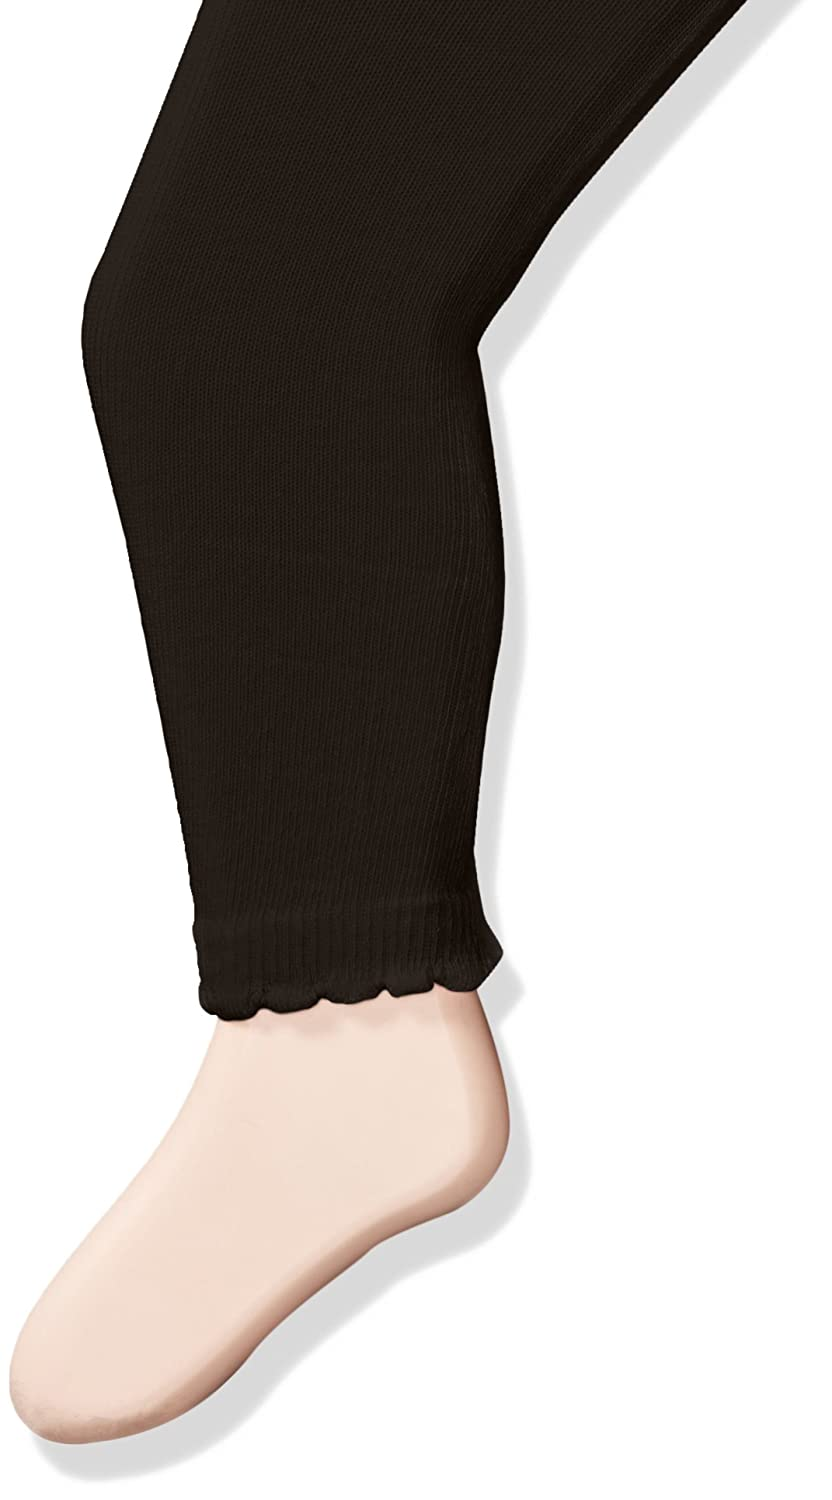 Jefferies Socks Girls Baby Cotton Footless Tights with Scalloped Edge